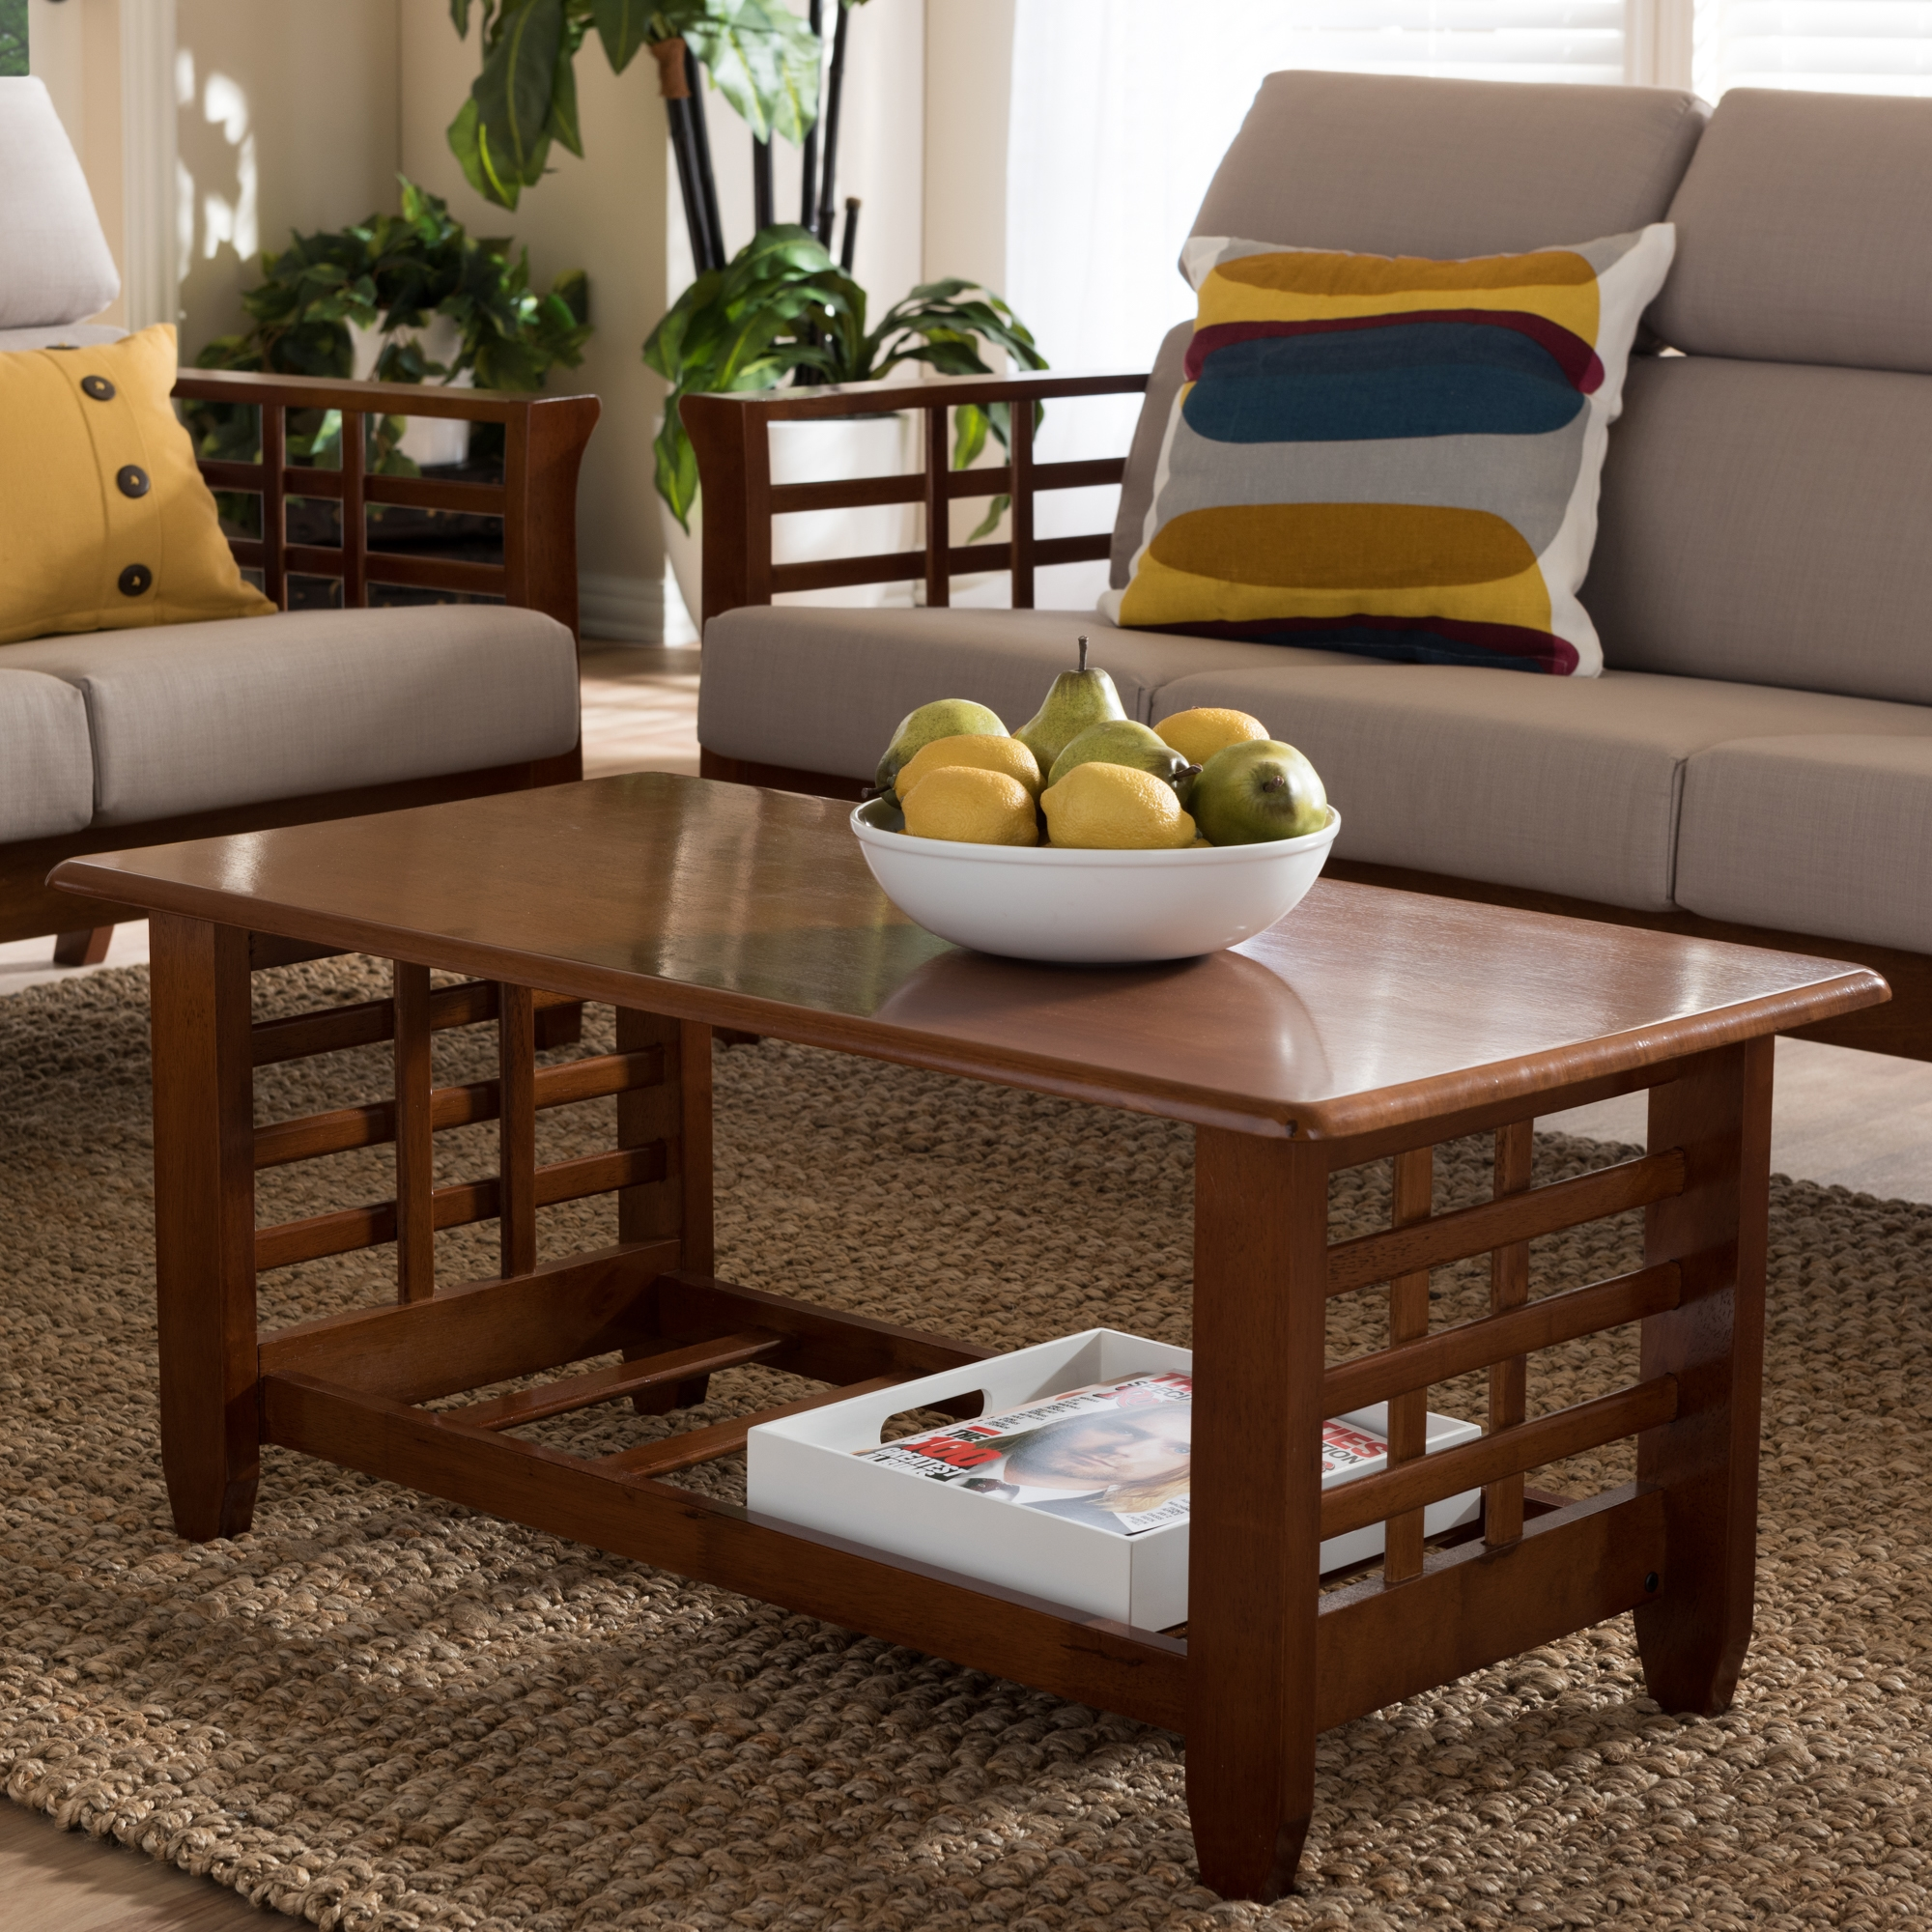 ... Baxton Studio Larissa Modern Classic Mission Style Cherry Finished  Brown Wood Living Room Occasional Coffee Table Part 51